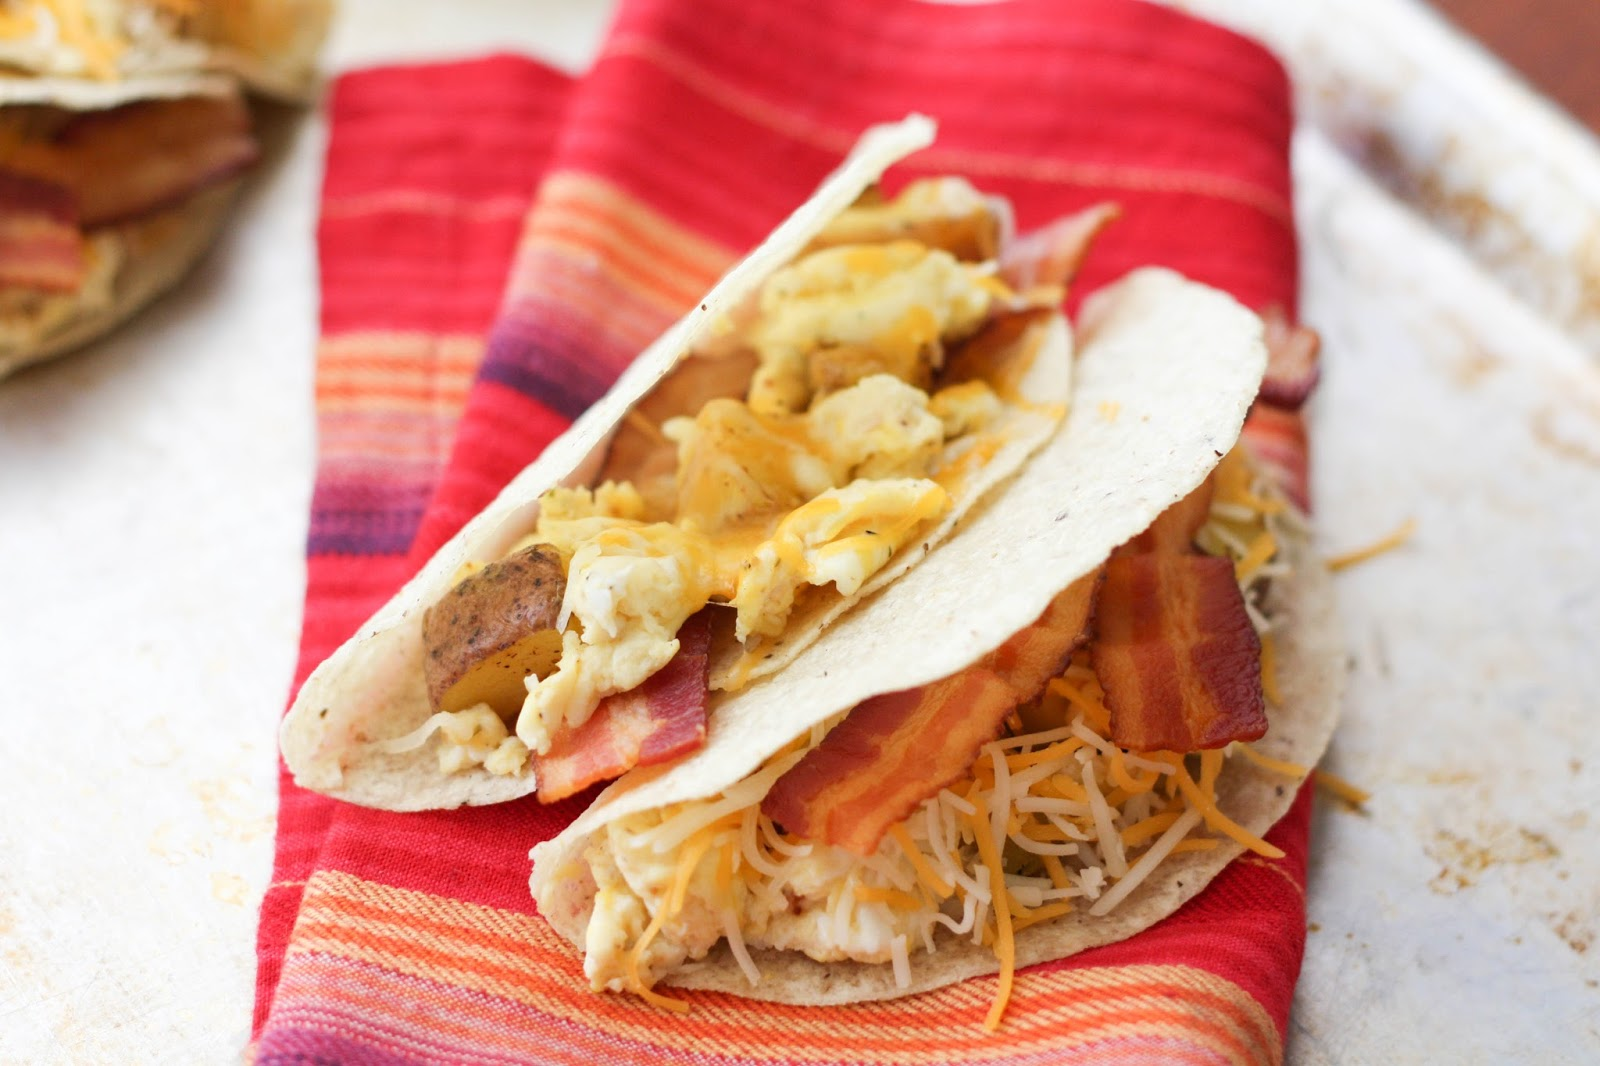 Bacon and Egg Breakfast Tacos recipe